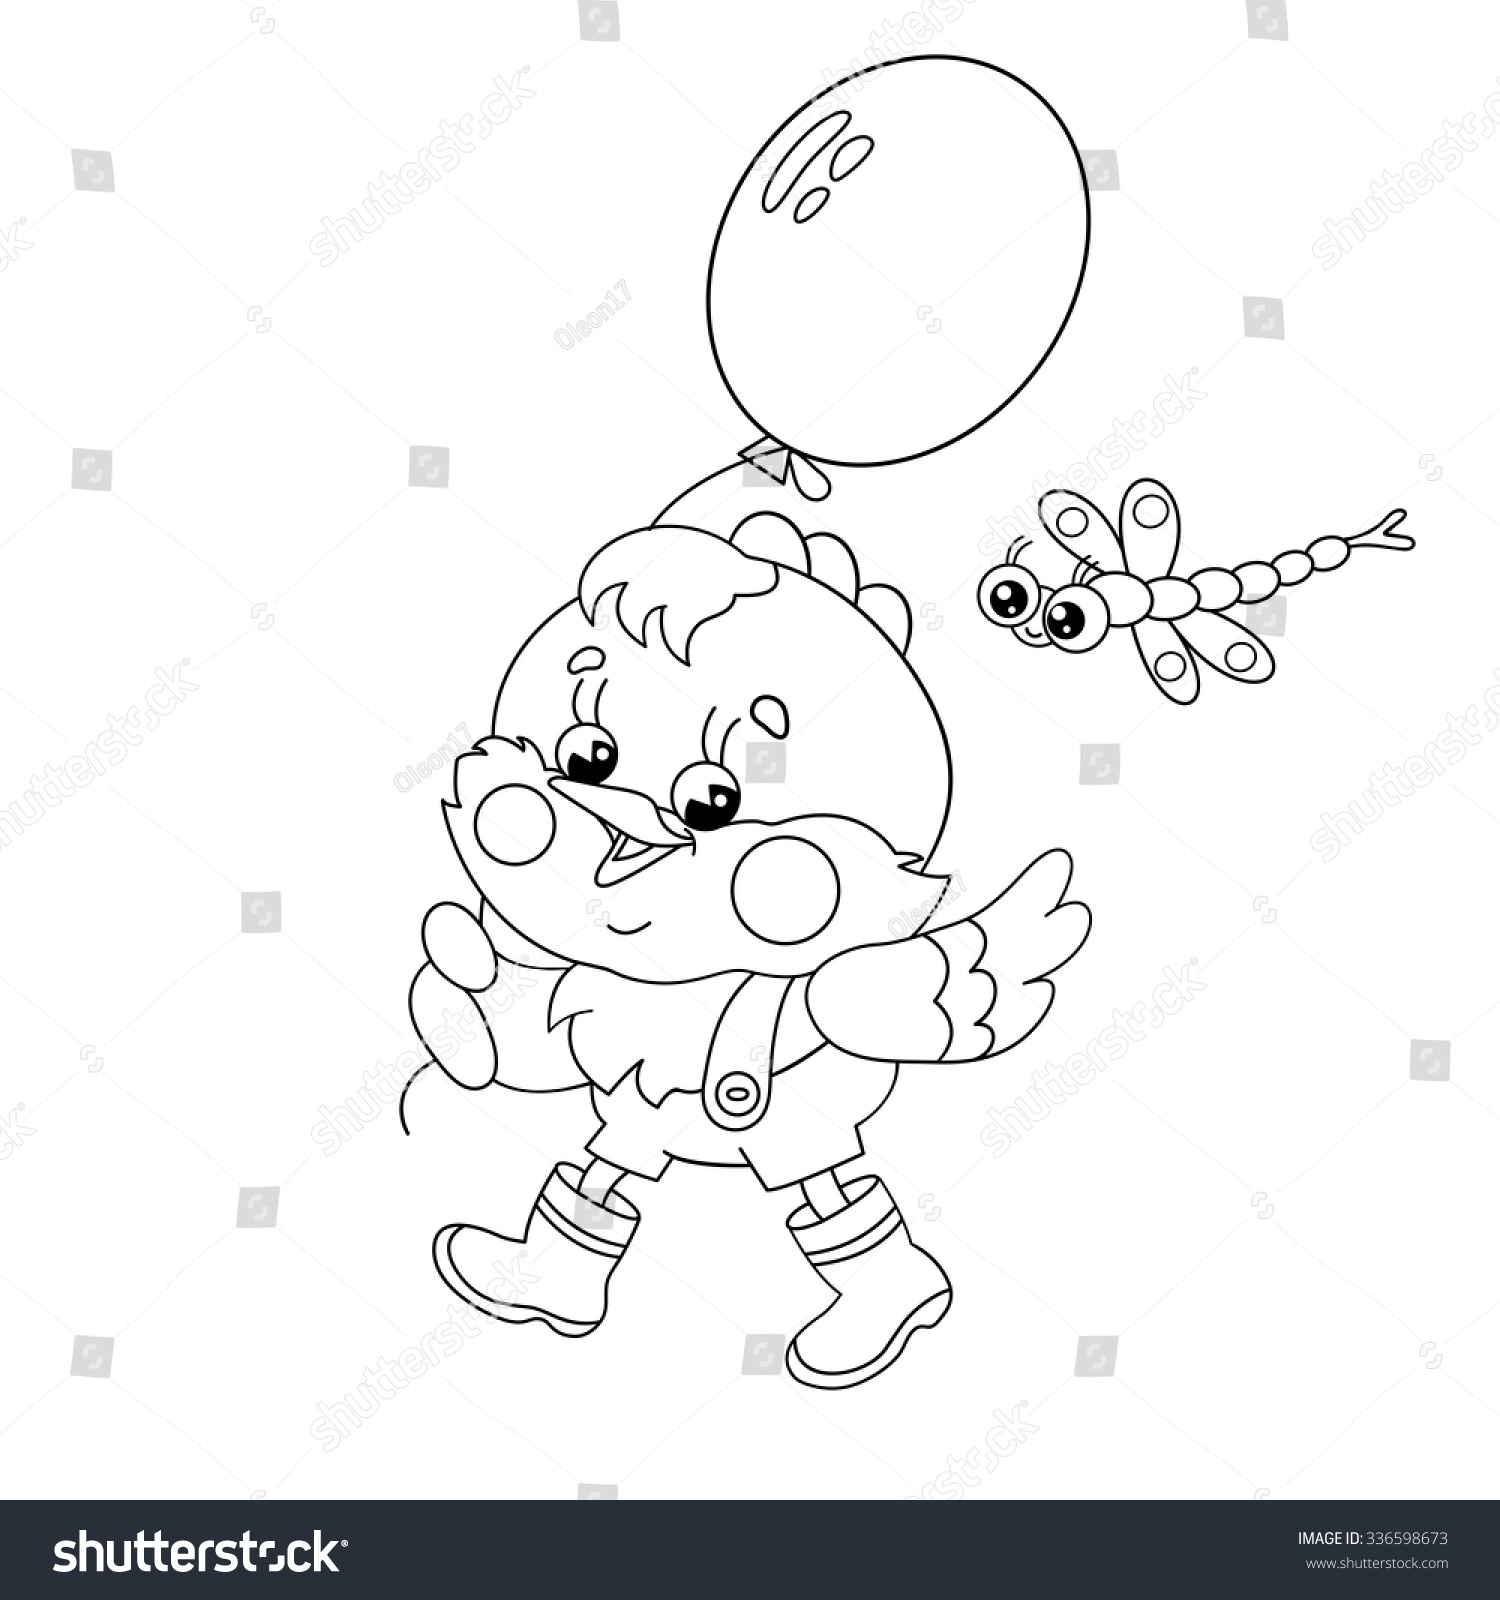 coloring page outline happy chicken walking stock vector 336598673